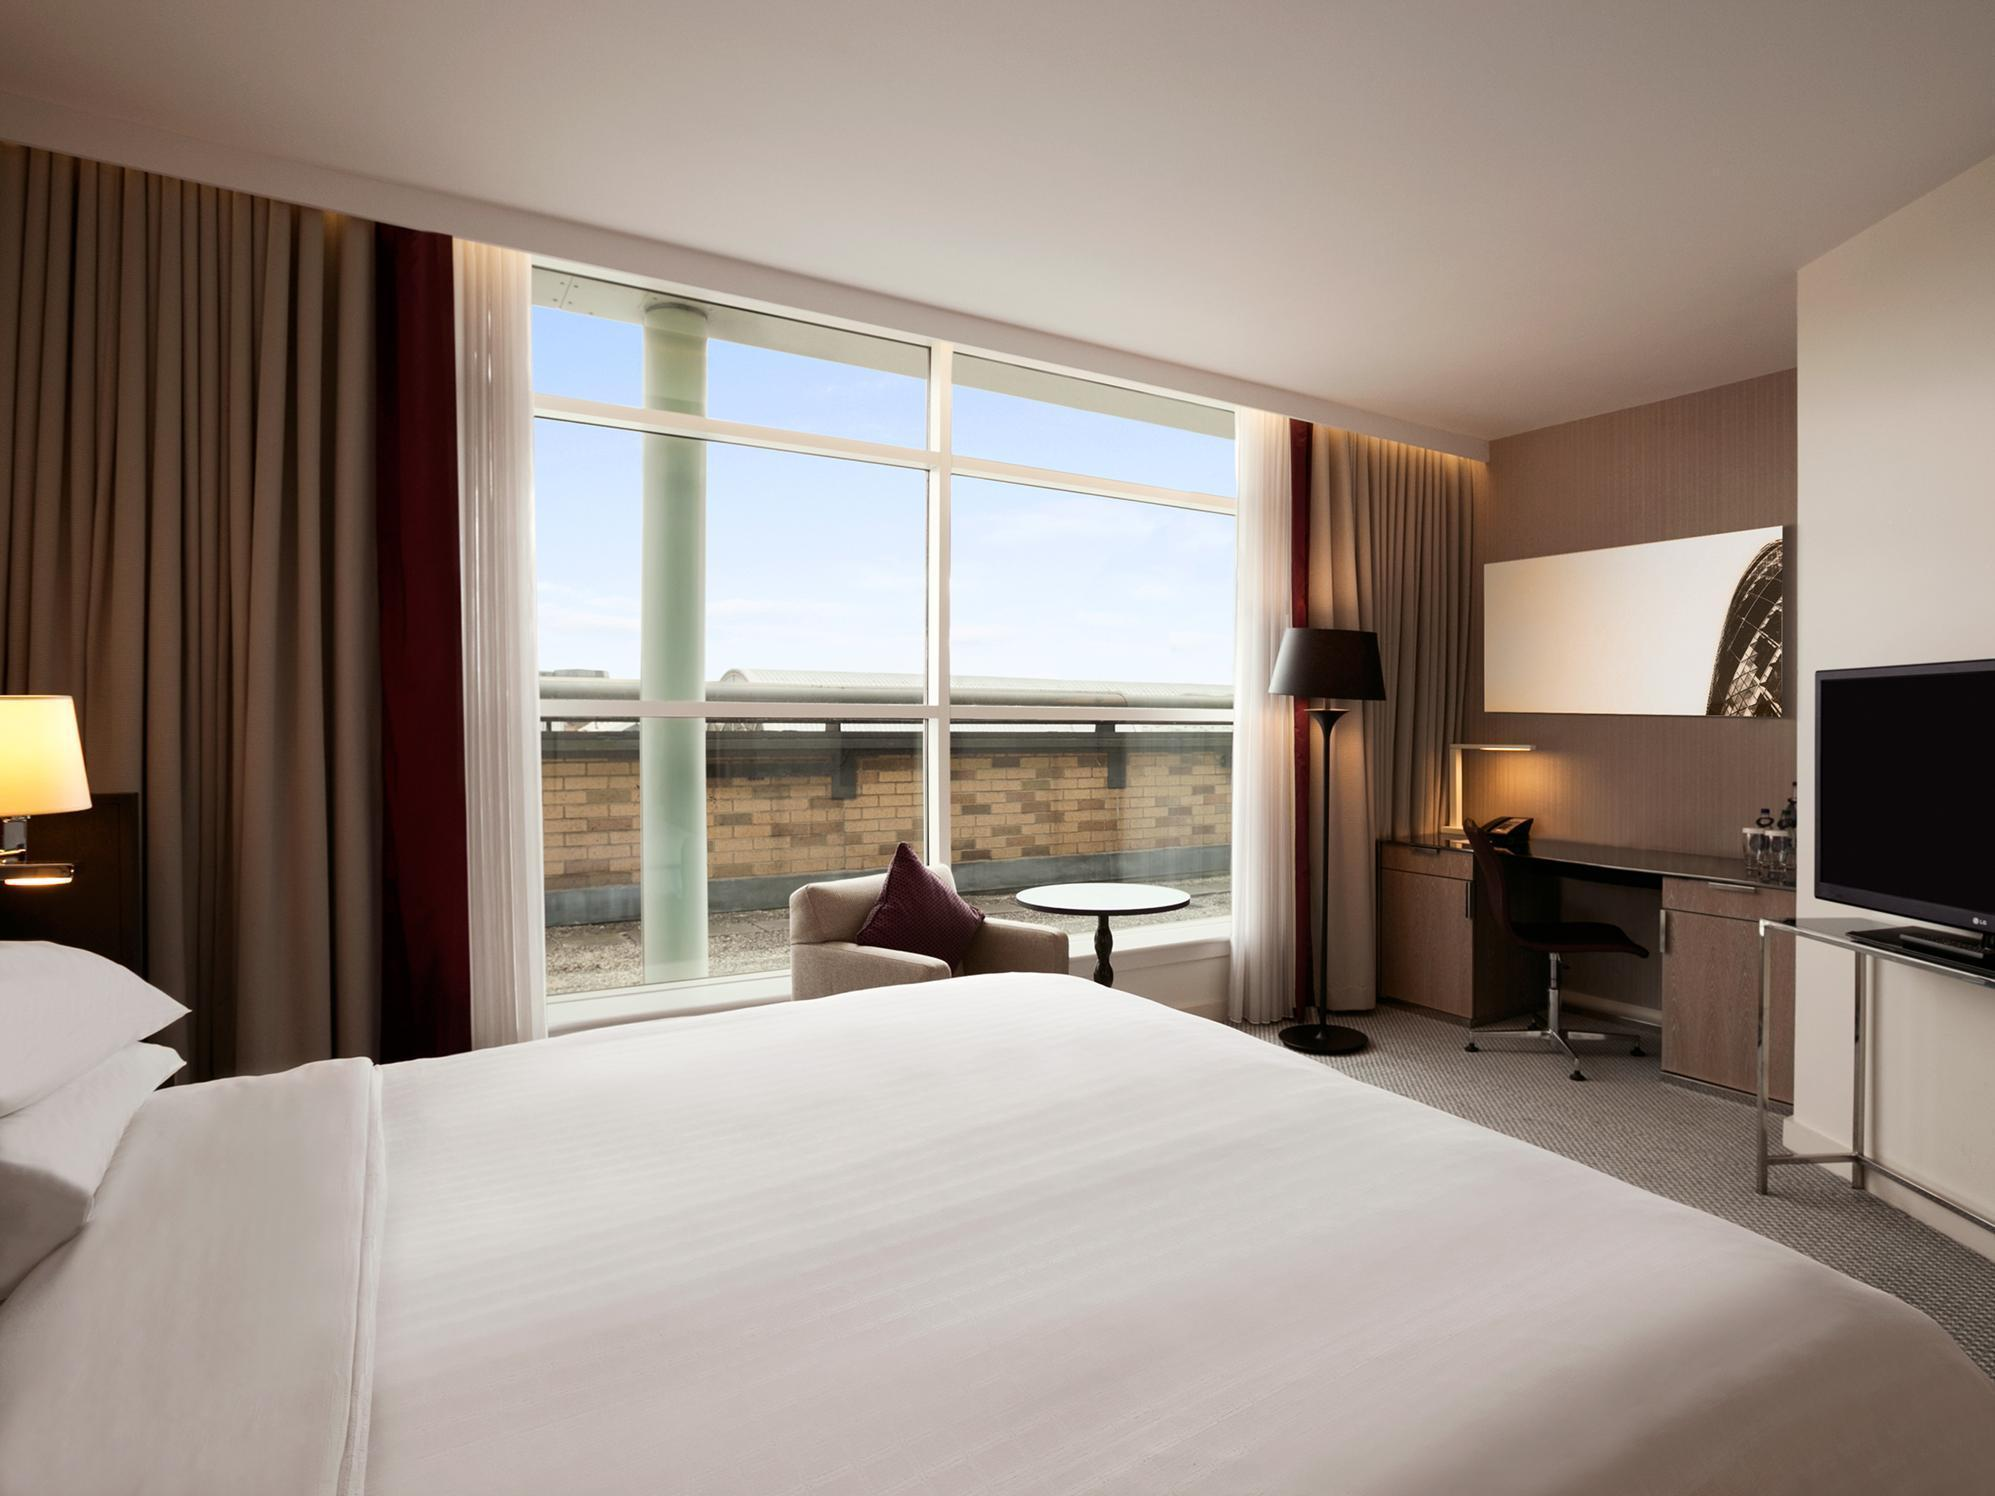 Cameră Hilton executive cu pat king-size (King Hilton Executive Room)